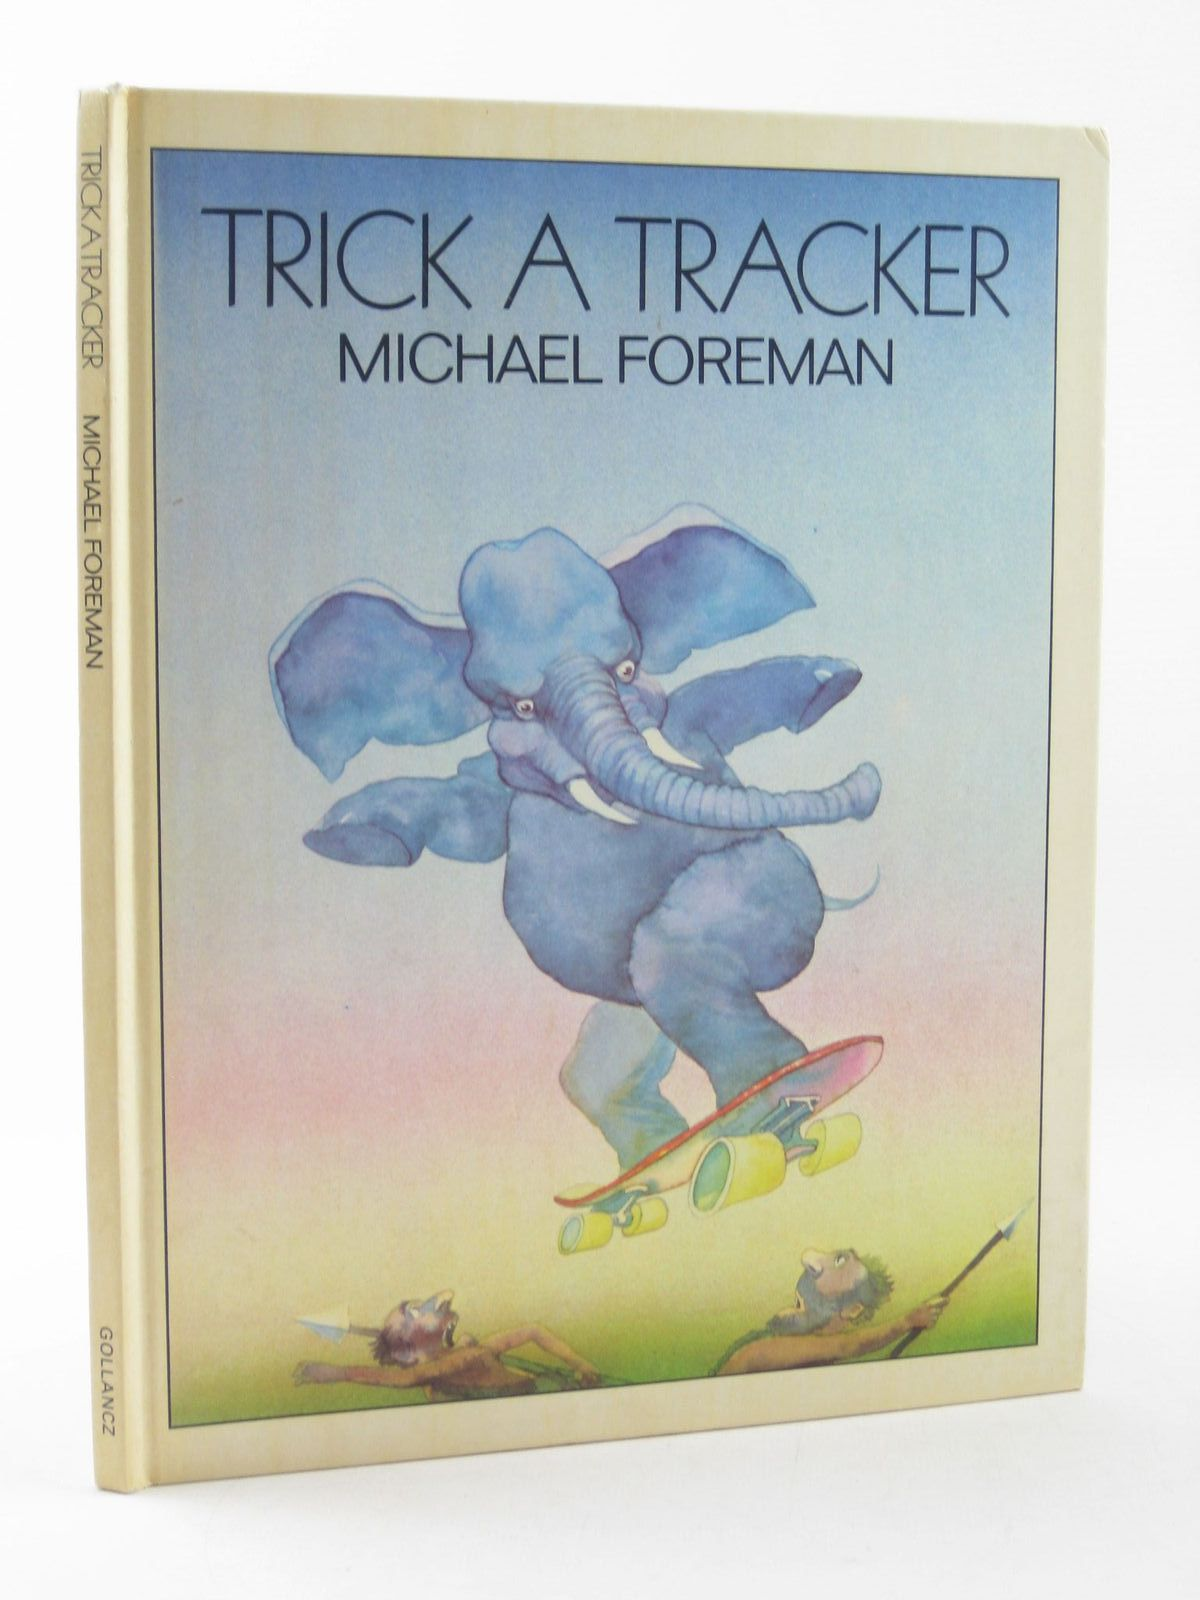 Photo of TRICK A TRACKER written by Foreman, Michael illustrated by Foreman, Michael published by Victor Gollancz Ltd. (STOCK CODE: 1311557)  for sale by Stella & Rose's Books